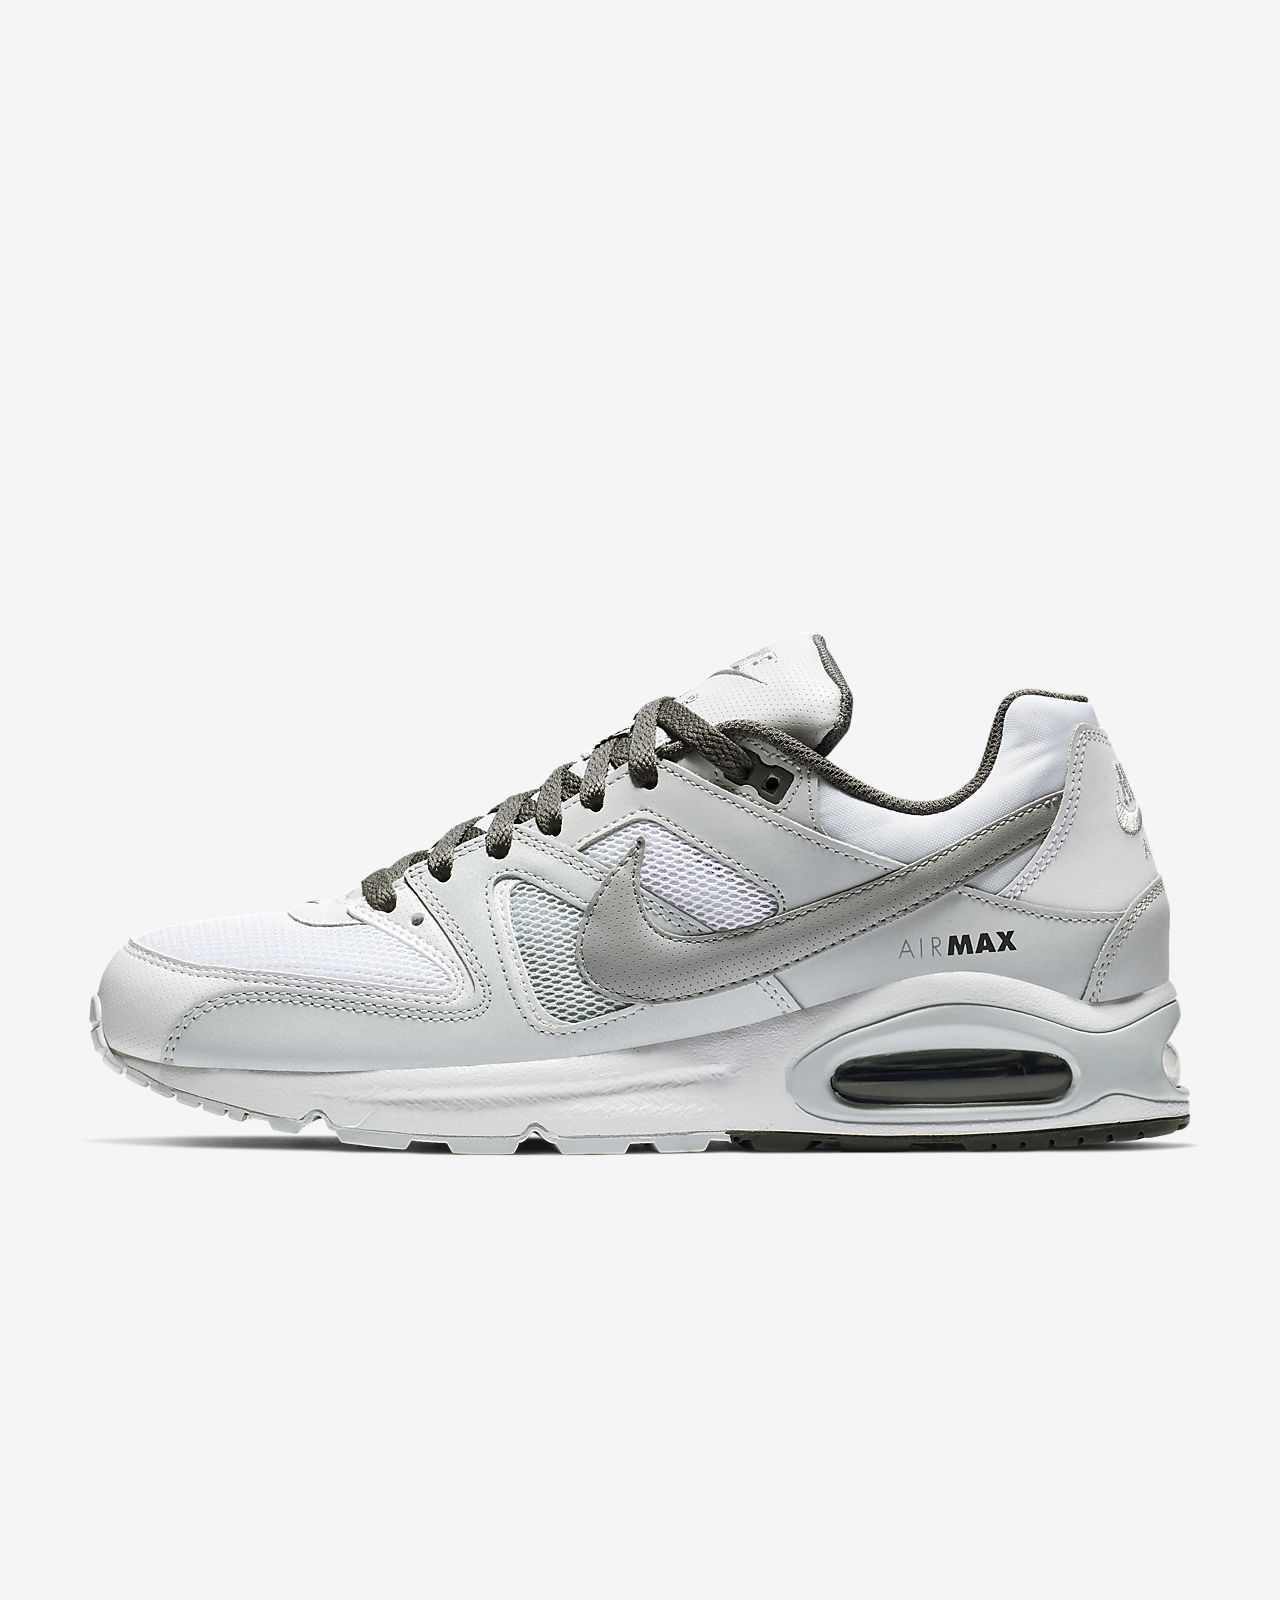 outlet store 5e236 46608 ... Nike Air Max Command – Chaussure pour Homme